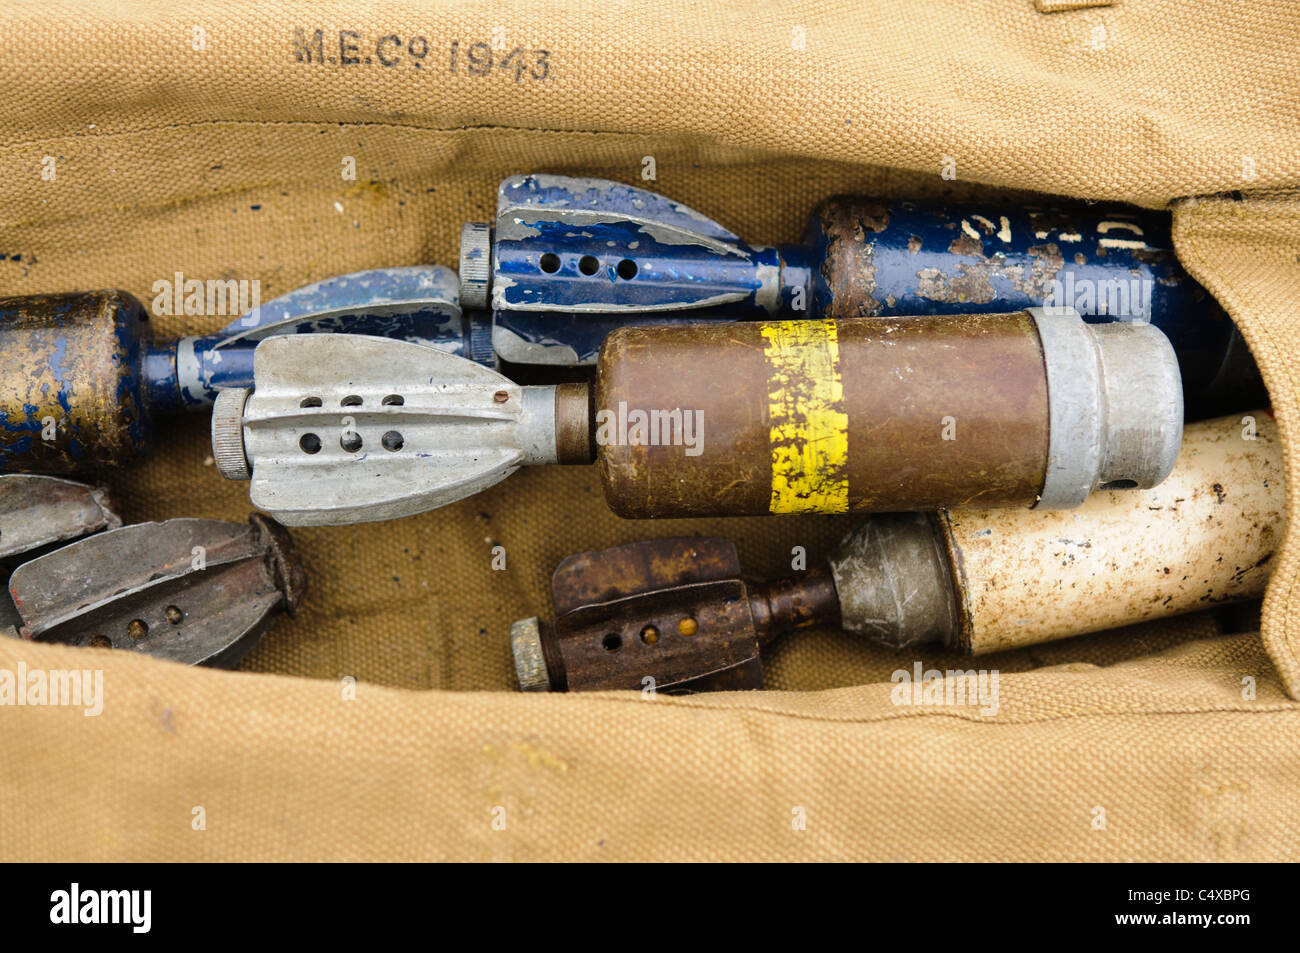 Bag with assorted WW2 bombs, grenades and mortars - Stock Image